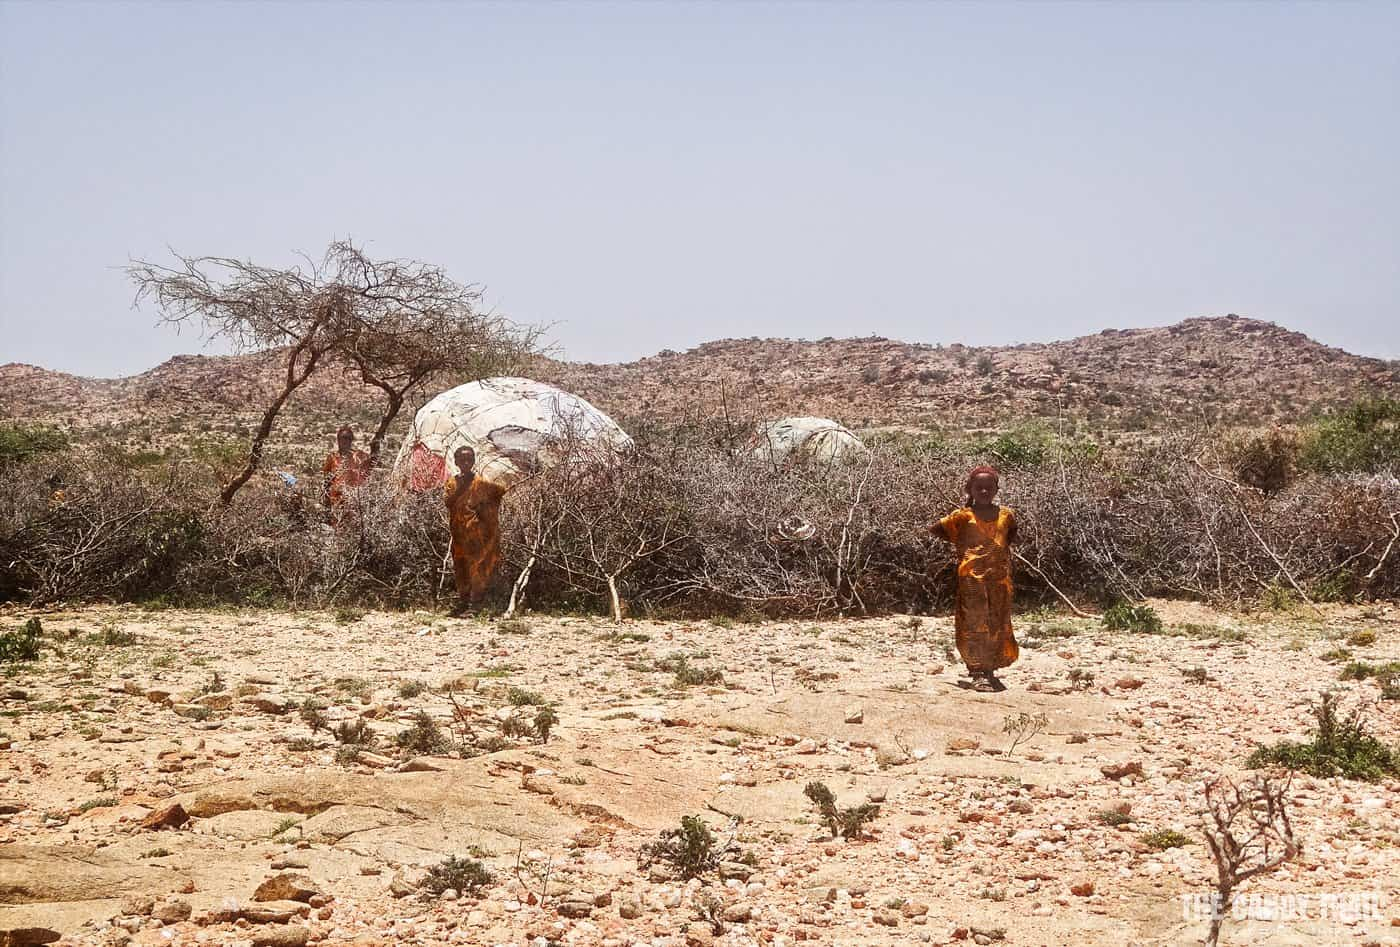 desert family hut near laas geel caves in somaliland